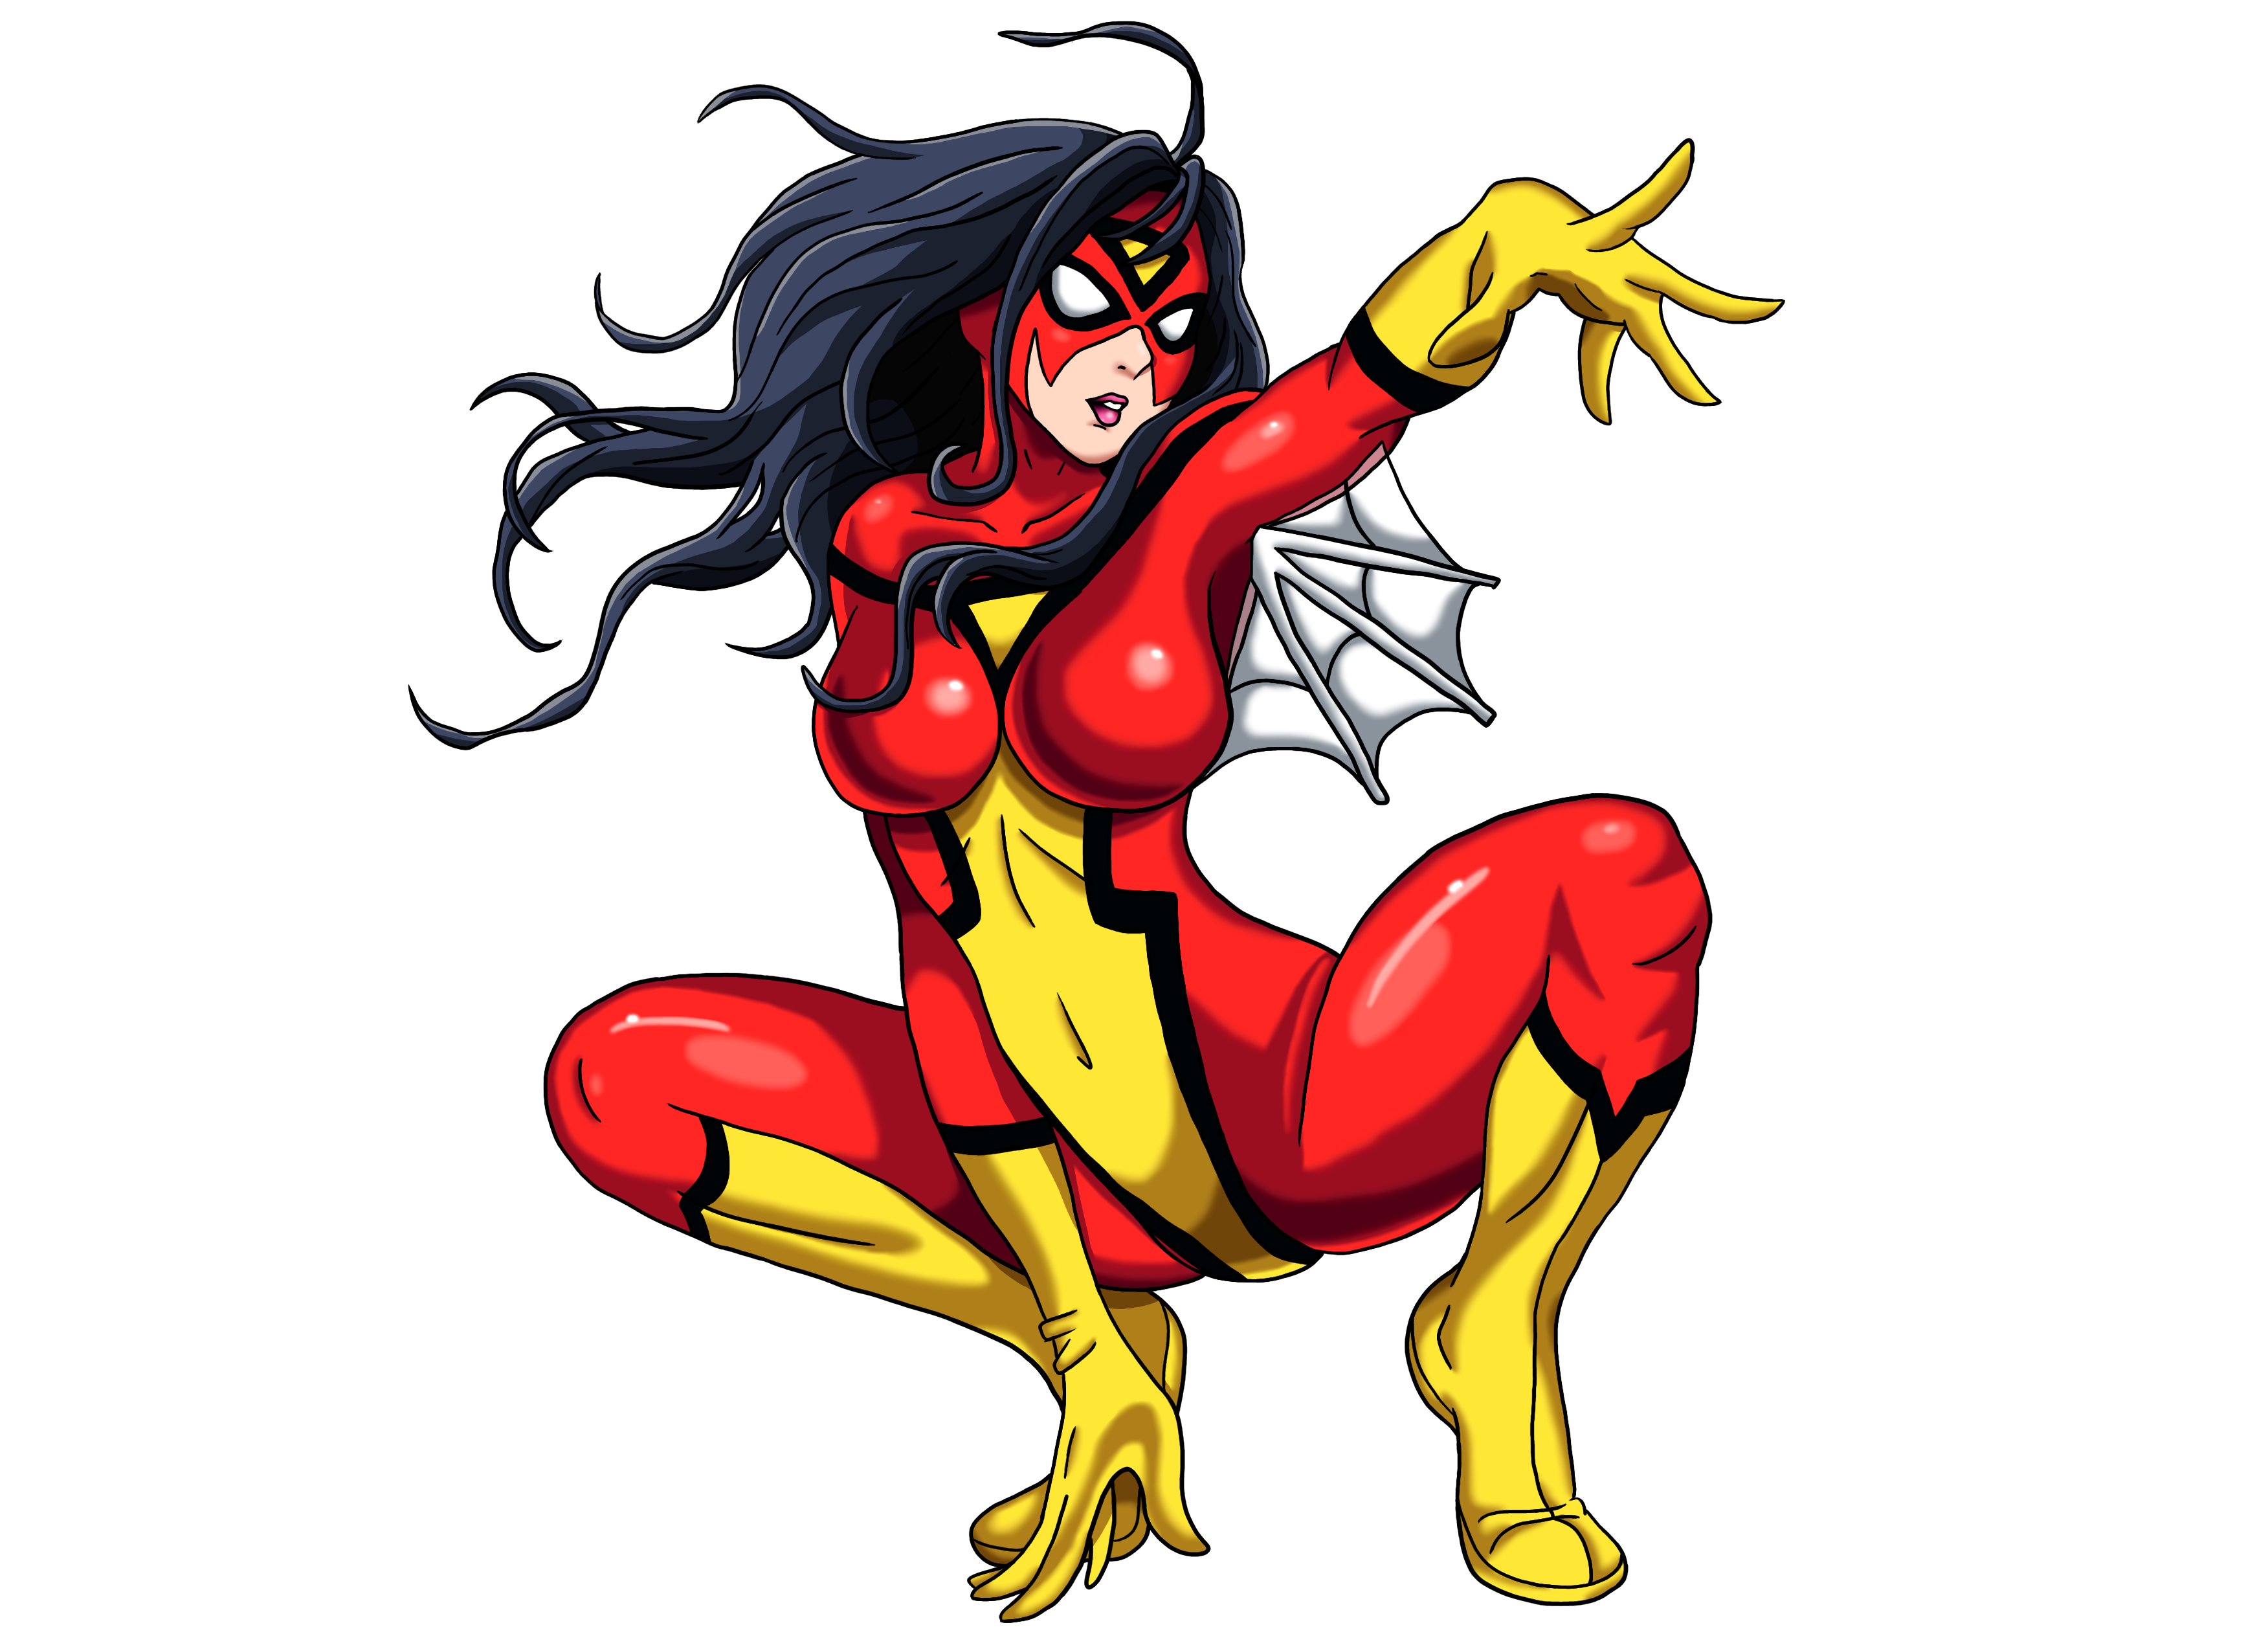 Spider woman png. Transparent images pluspng background